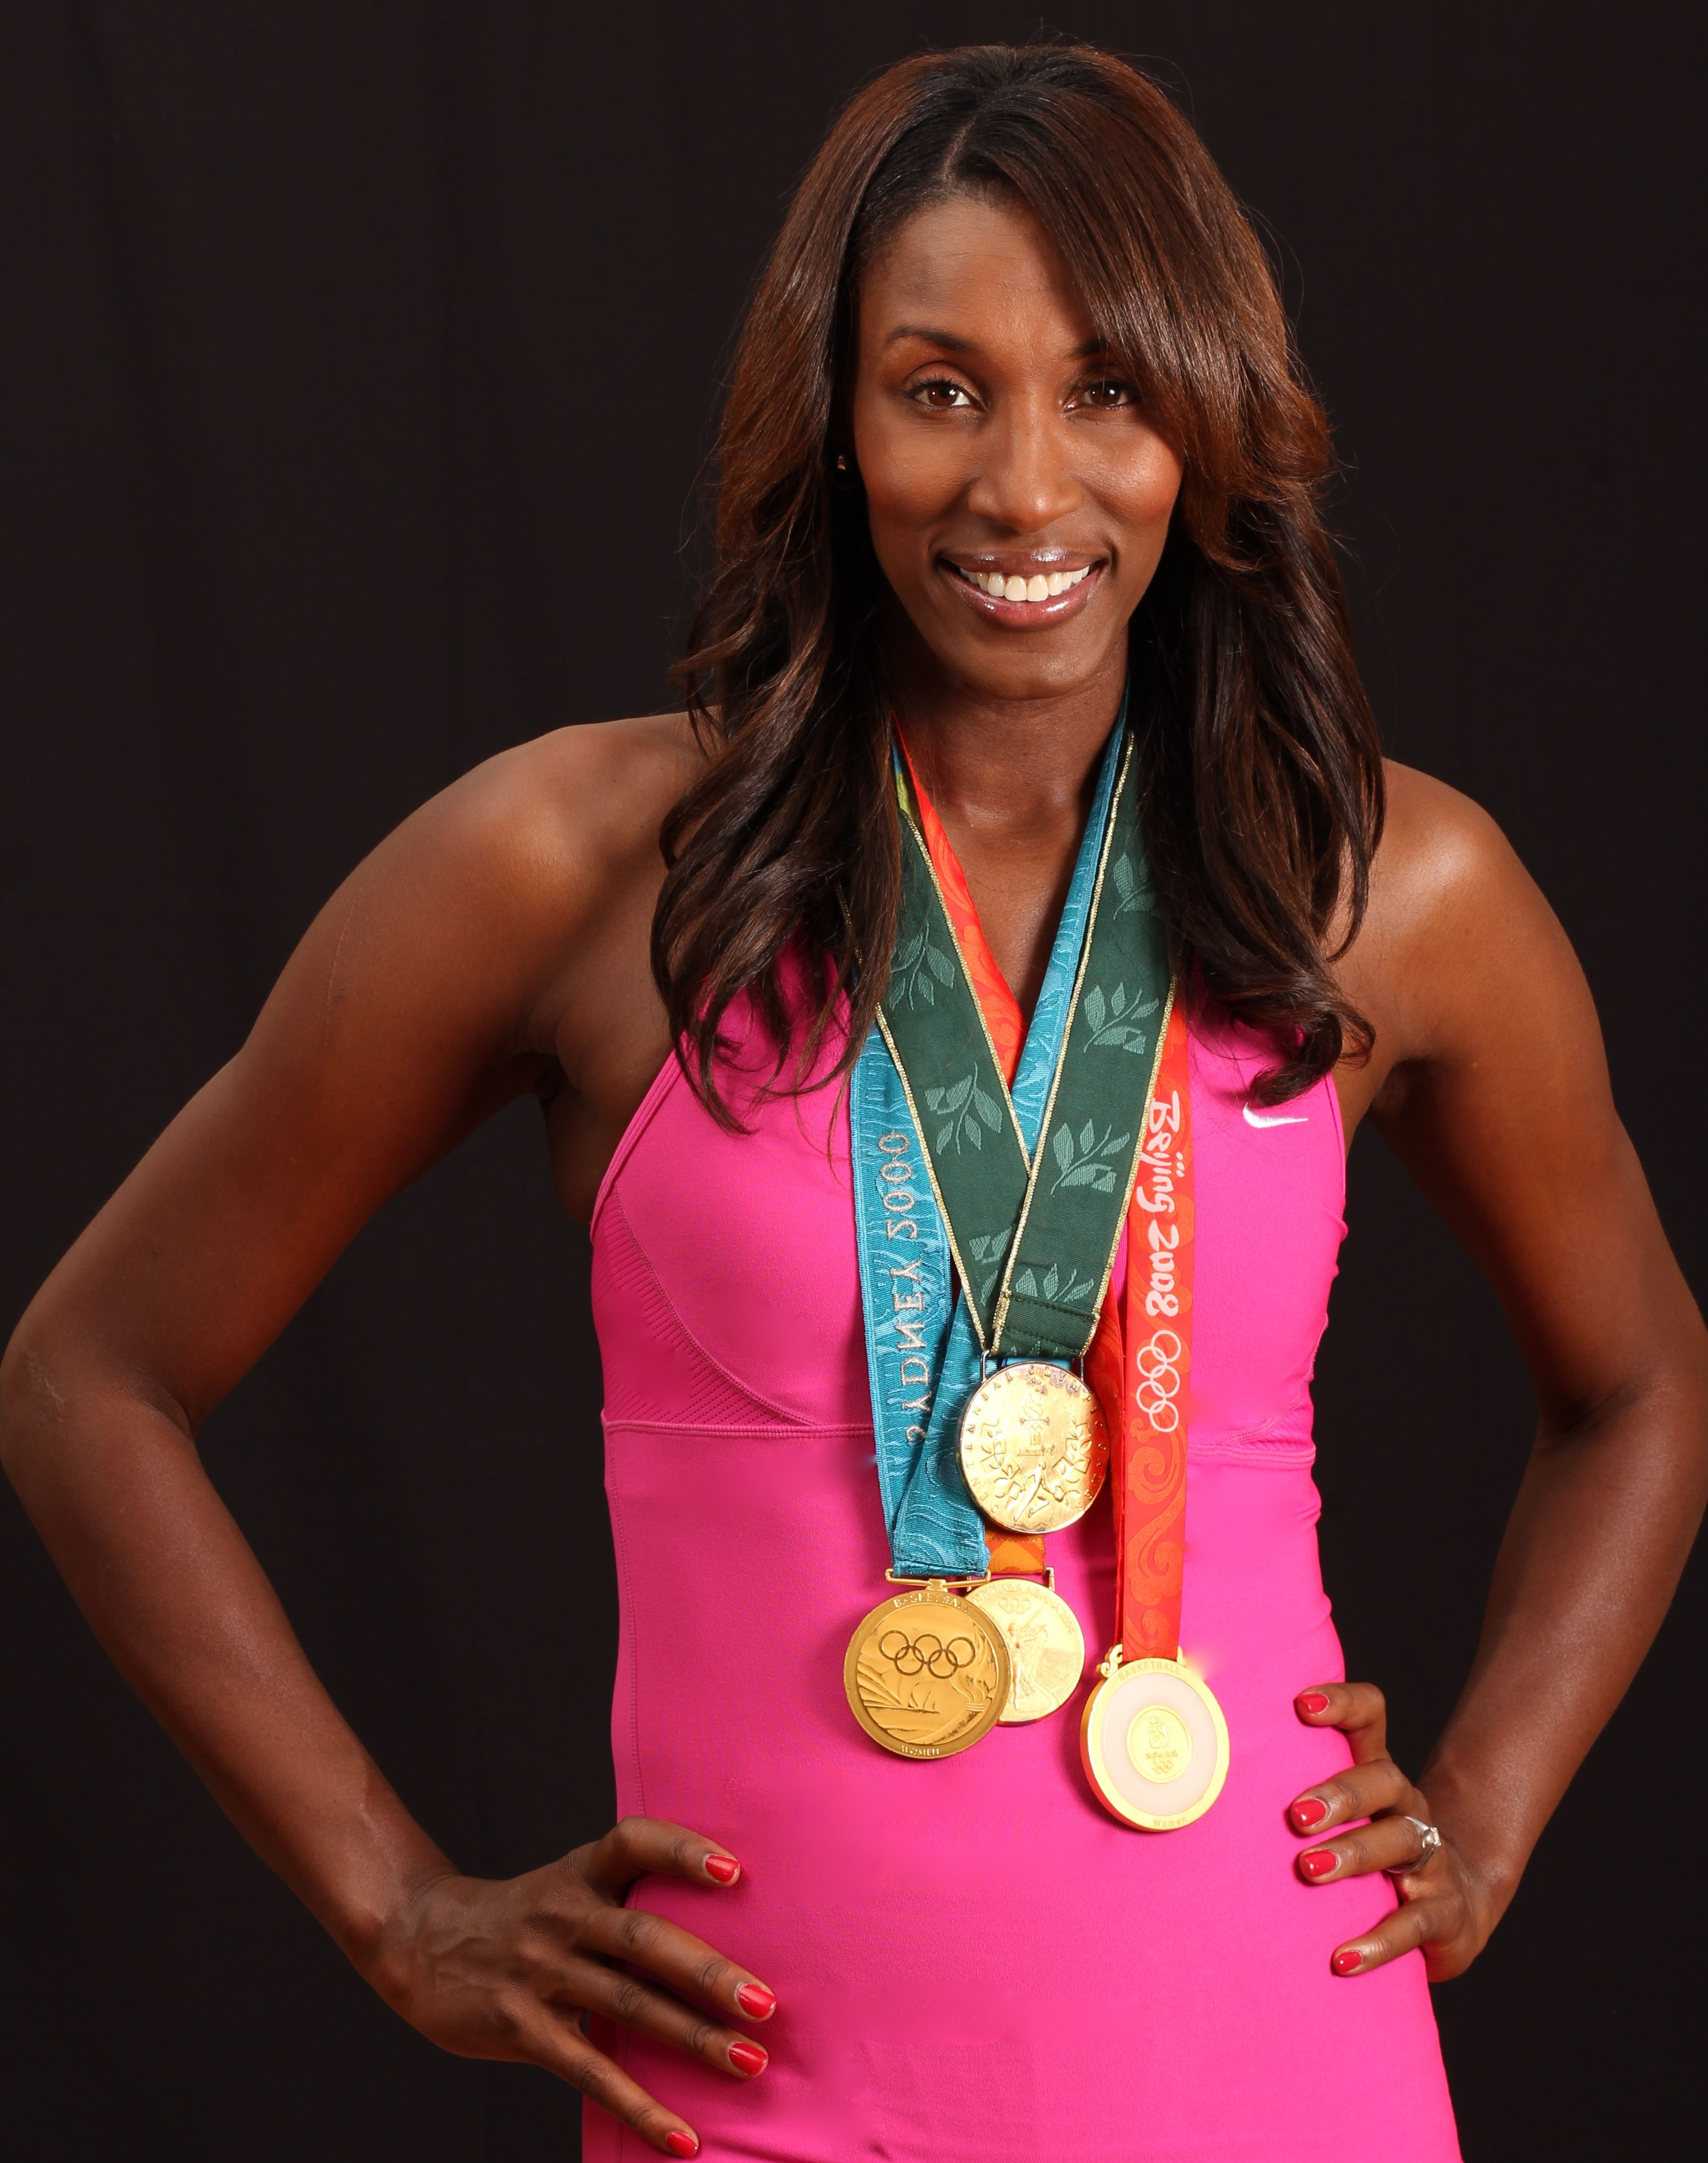 lisa leslie Lisa leslie (born july 7, 1972 in gardena, california) is an american women's national basketball association player currently playing for the los angeles sparks.